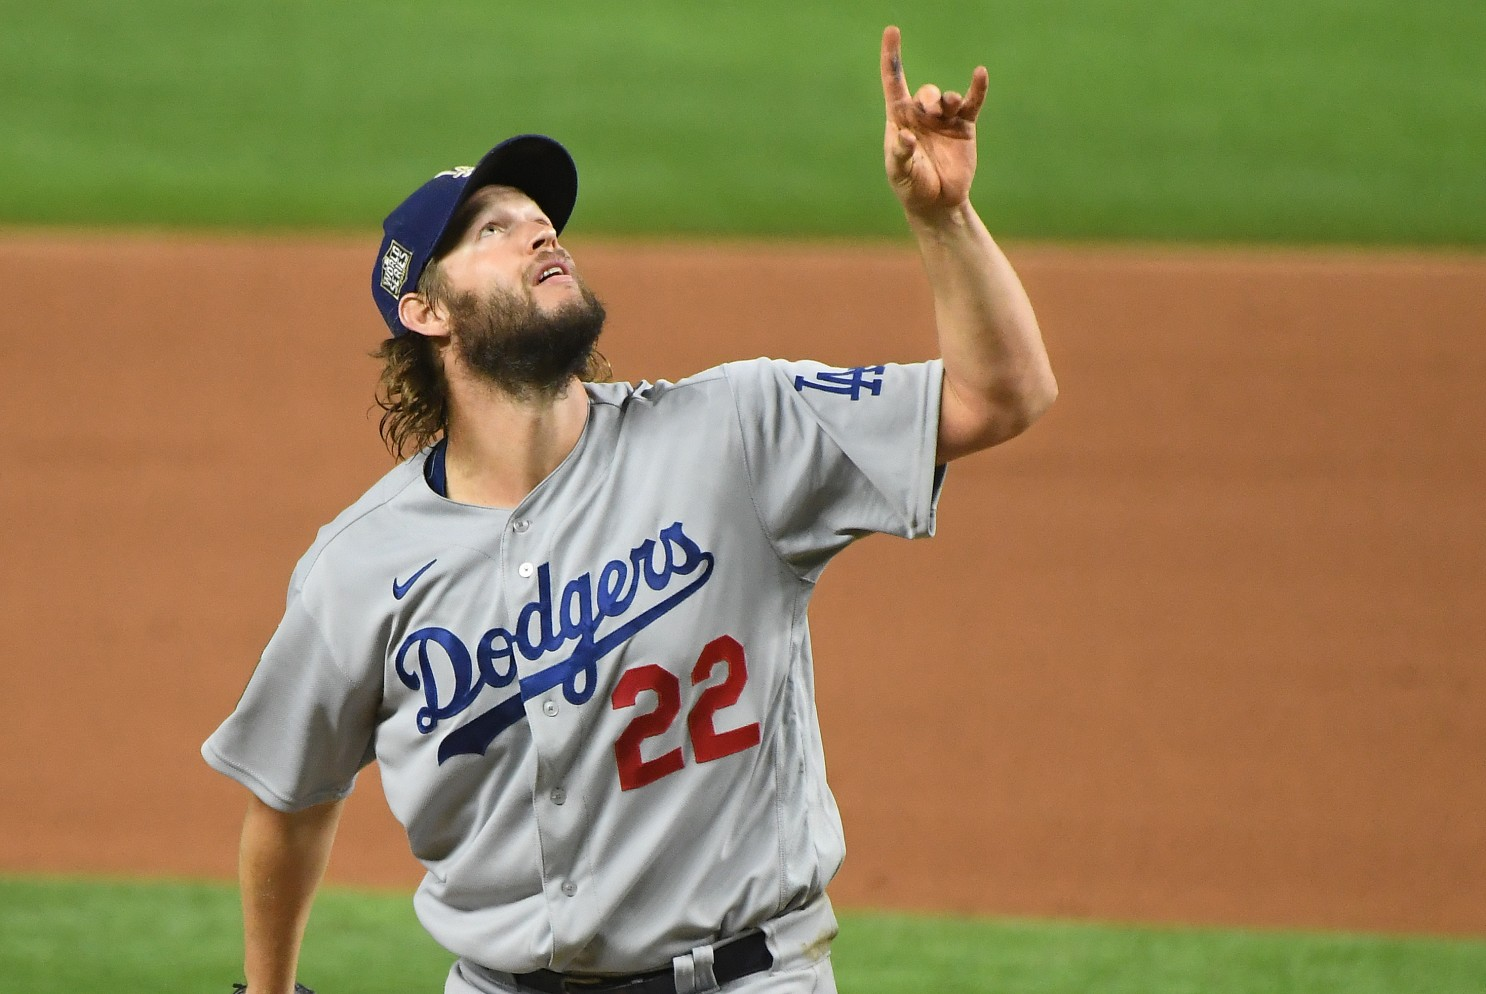 Kershaw and the Dodgers favored in 2021